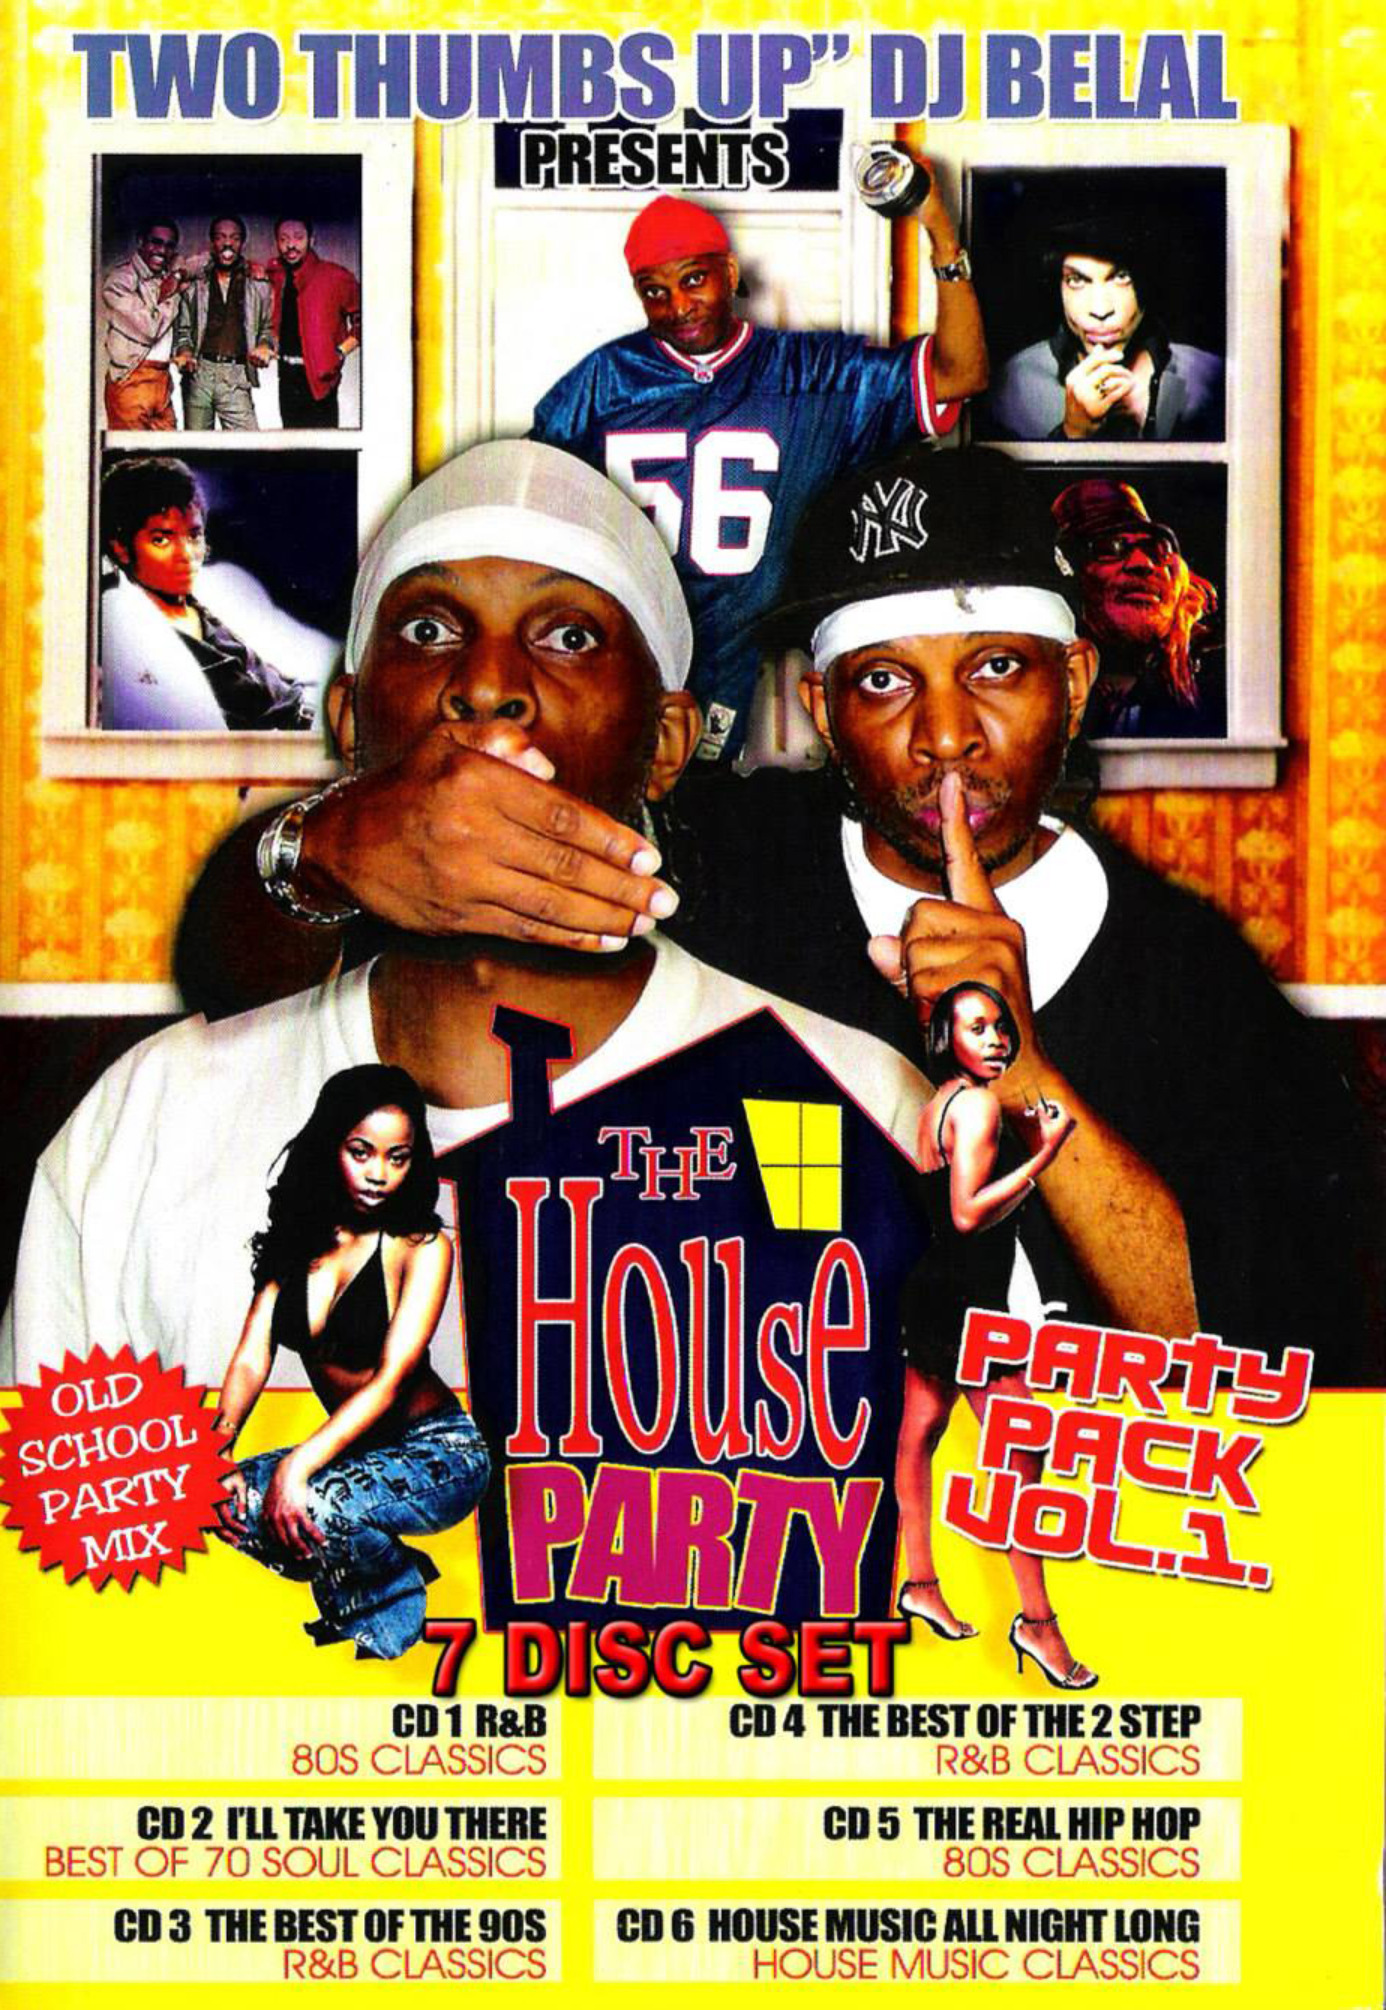 Old School House Party Mix 3 MP3 - The Legendary DJ Belal